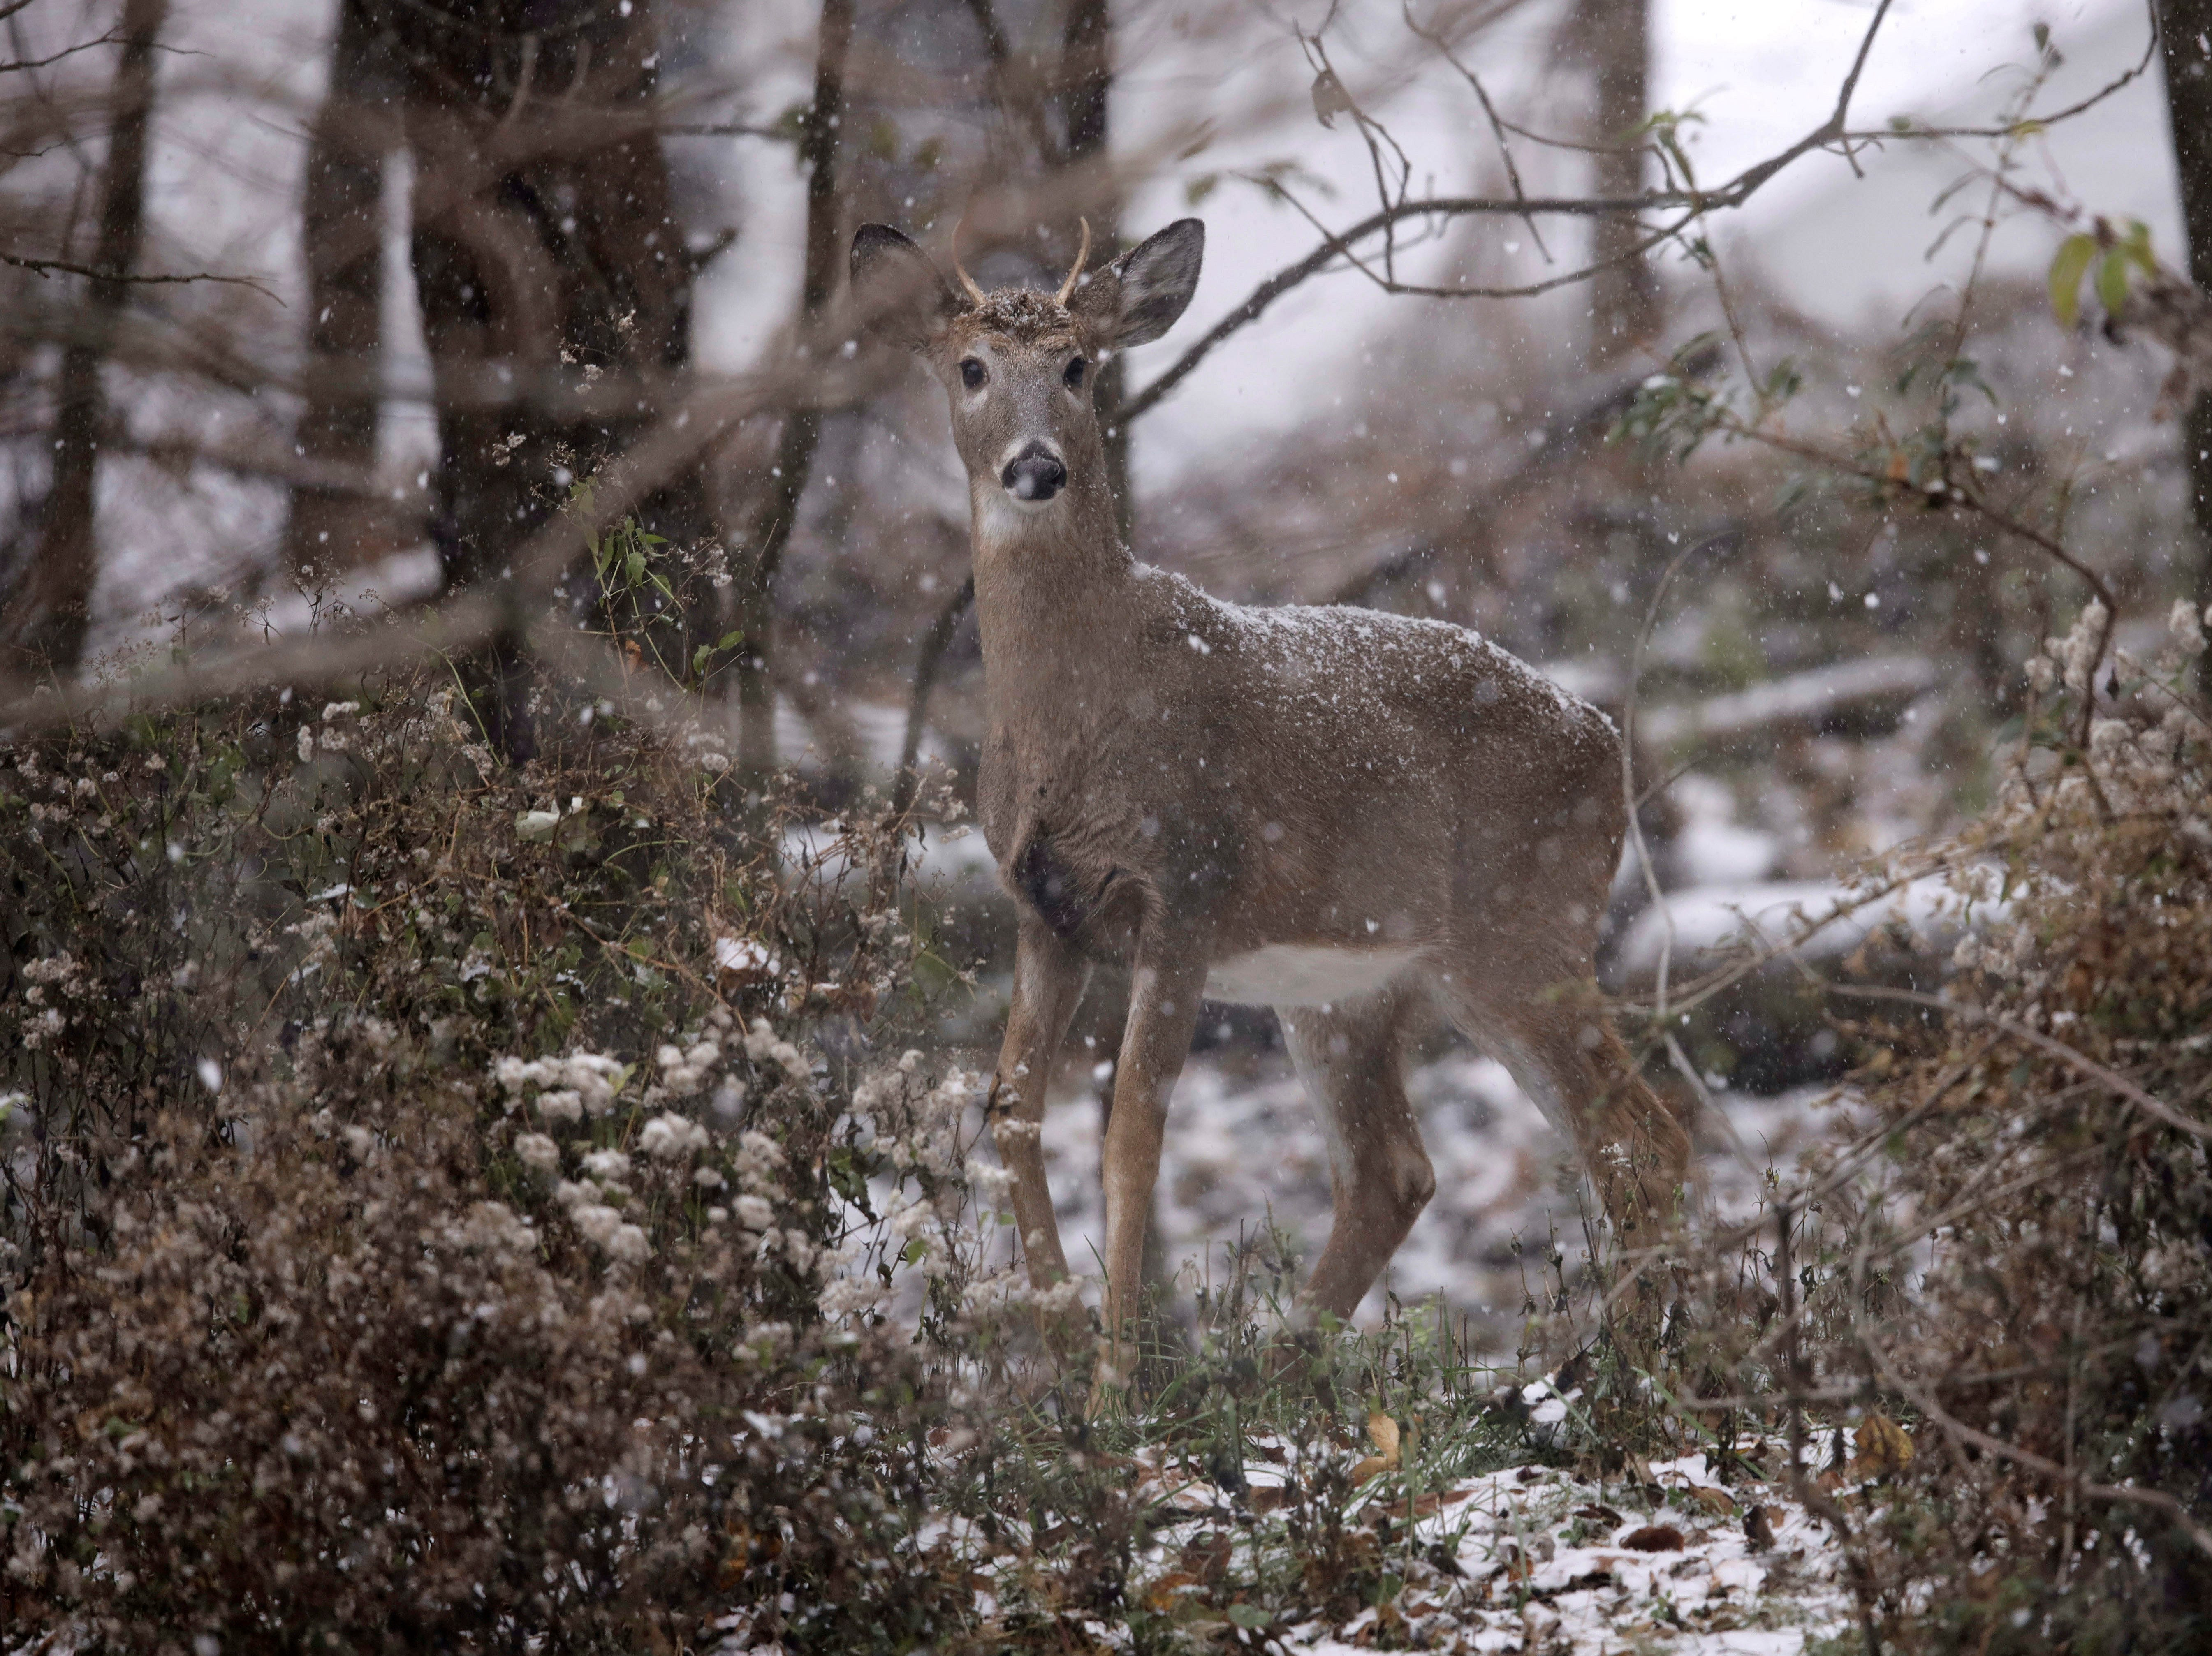 A young buck forages for food during a snow storm, Thursday, Nov. 15, 2018, in Marple Township, Pa. Pennsylvanians are dealing with their first taste of wintry weather this season. A mix of rain, sleet and snow had started falling across some areas of the state by late Thursday morning.